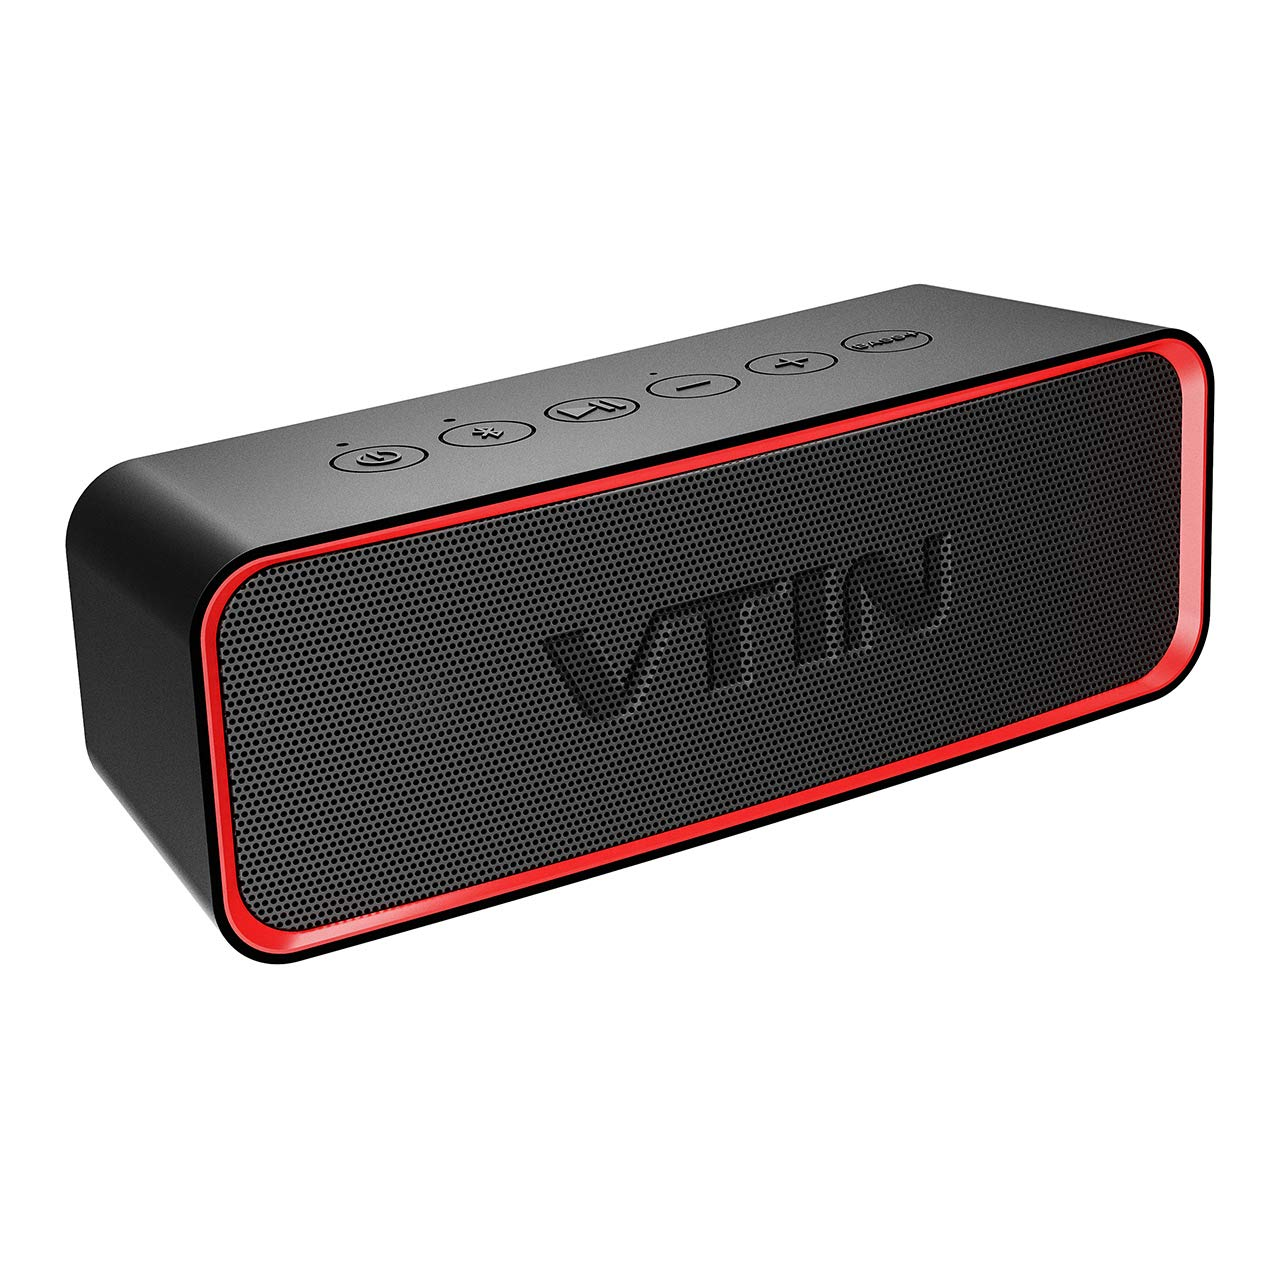 VTIN IPX6 Waterproof Portable Bluetooth Speaker with Enhanced Bass, HiFi-Tec, HD Sound, Support AUX in, Indoor/Outdoor Wireless Speaker for Smartphones, Waterproof Speaker for Party/Beach/Car/Dance